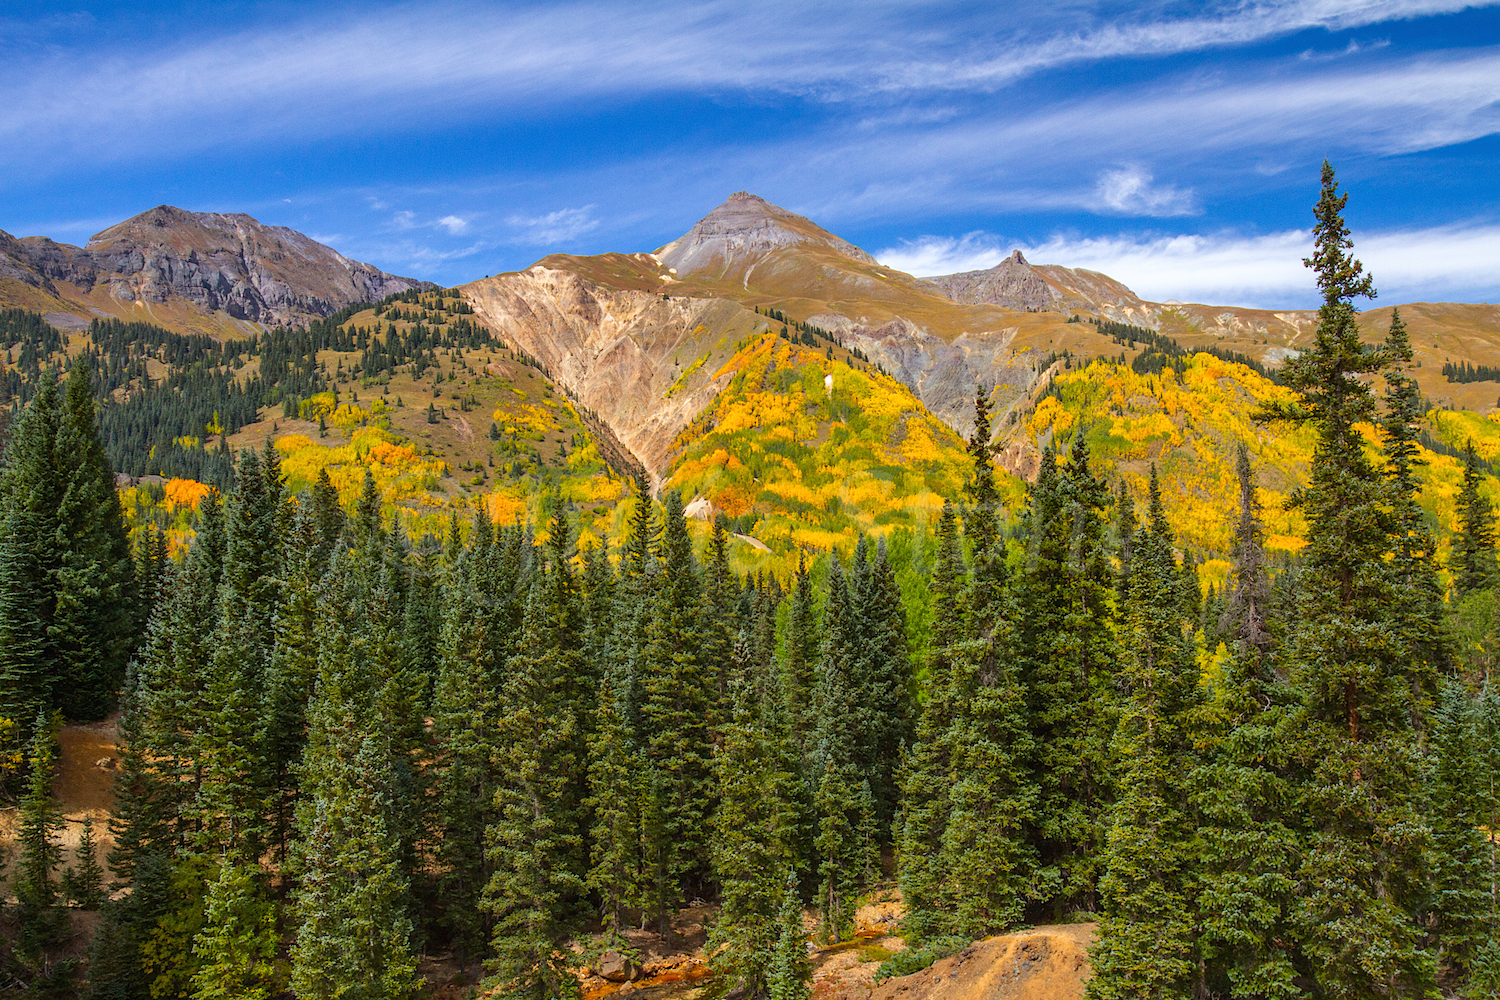 Red Mountain Fall Color, Image #9678